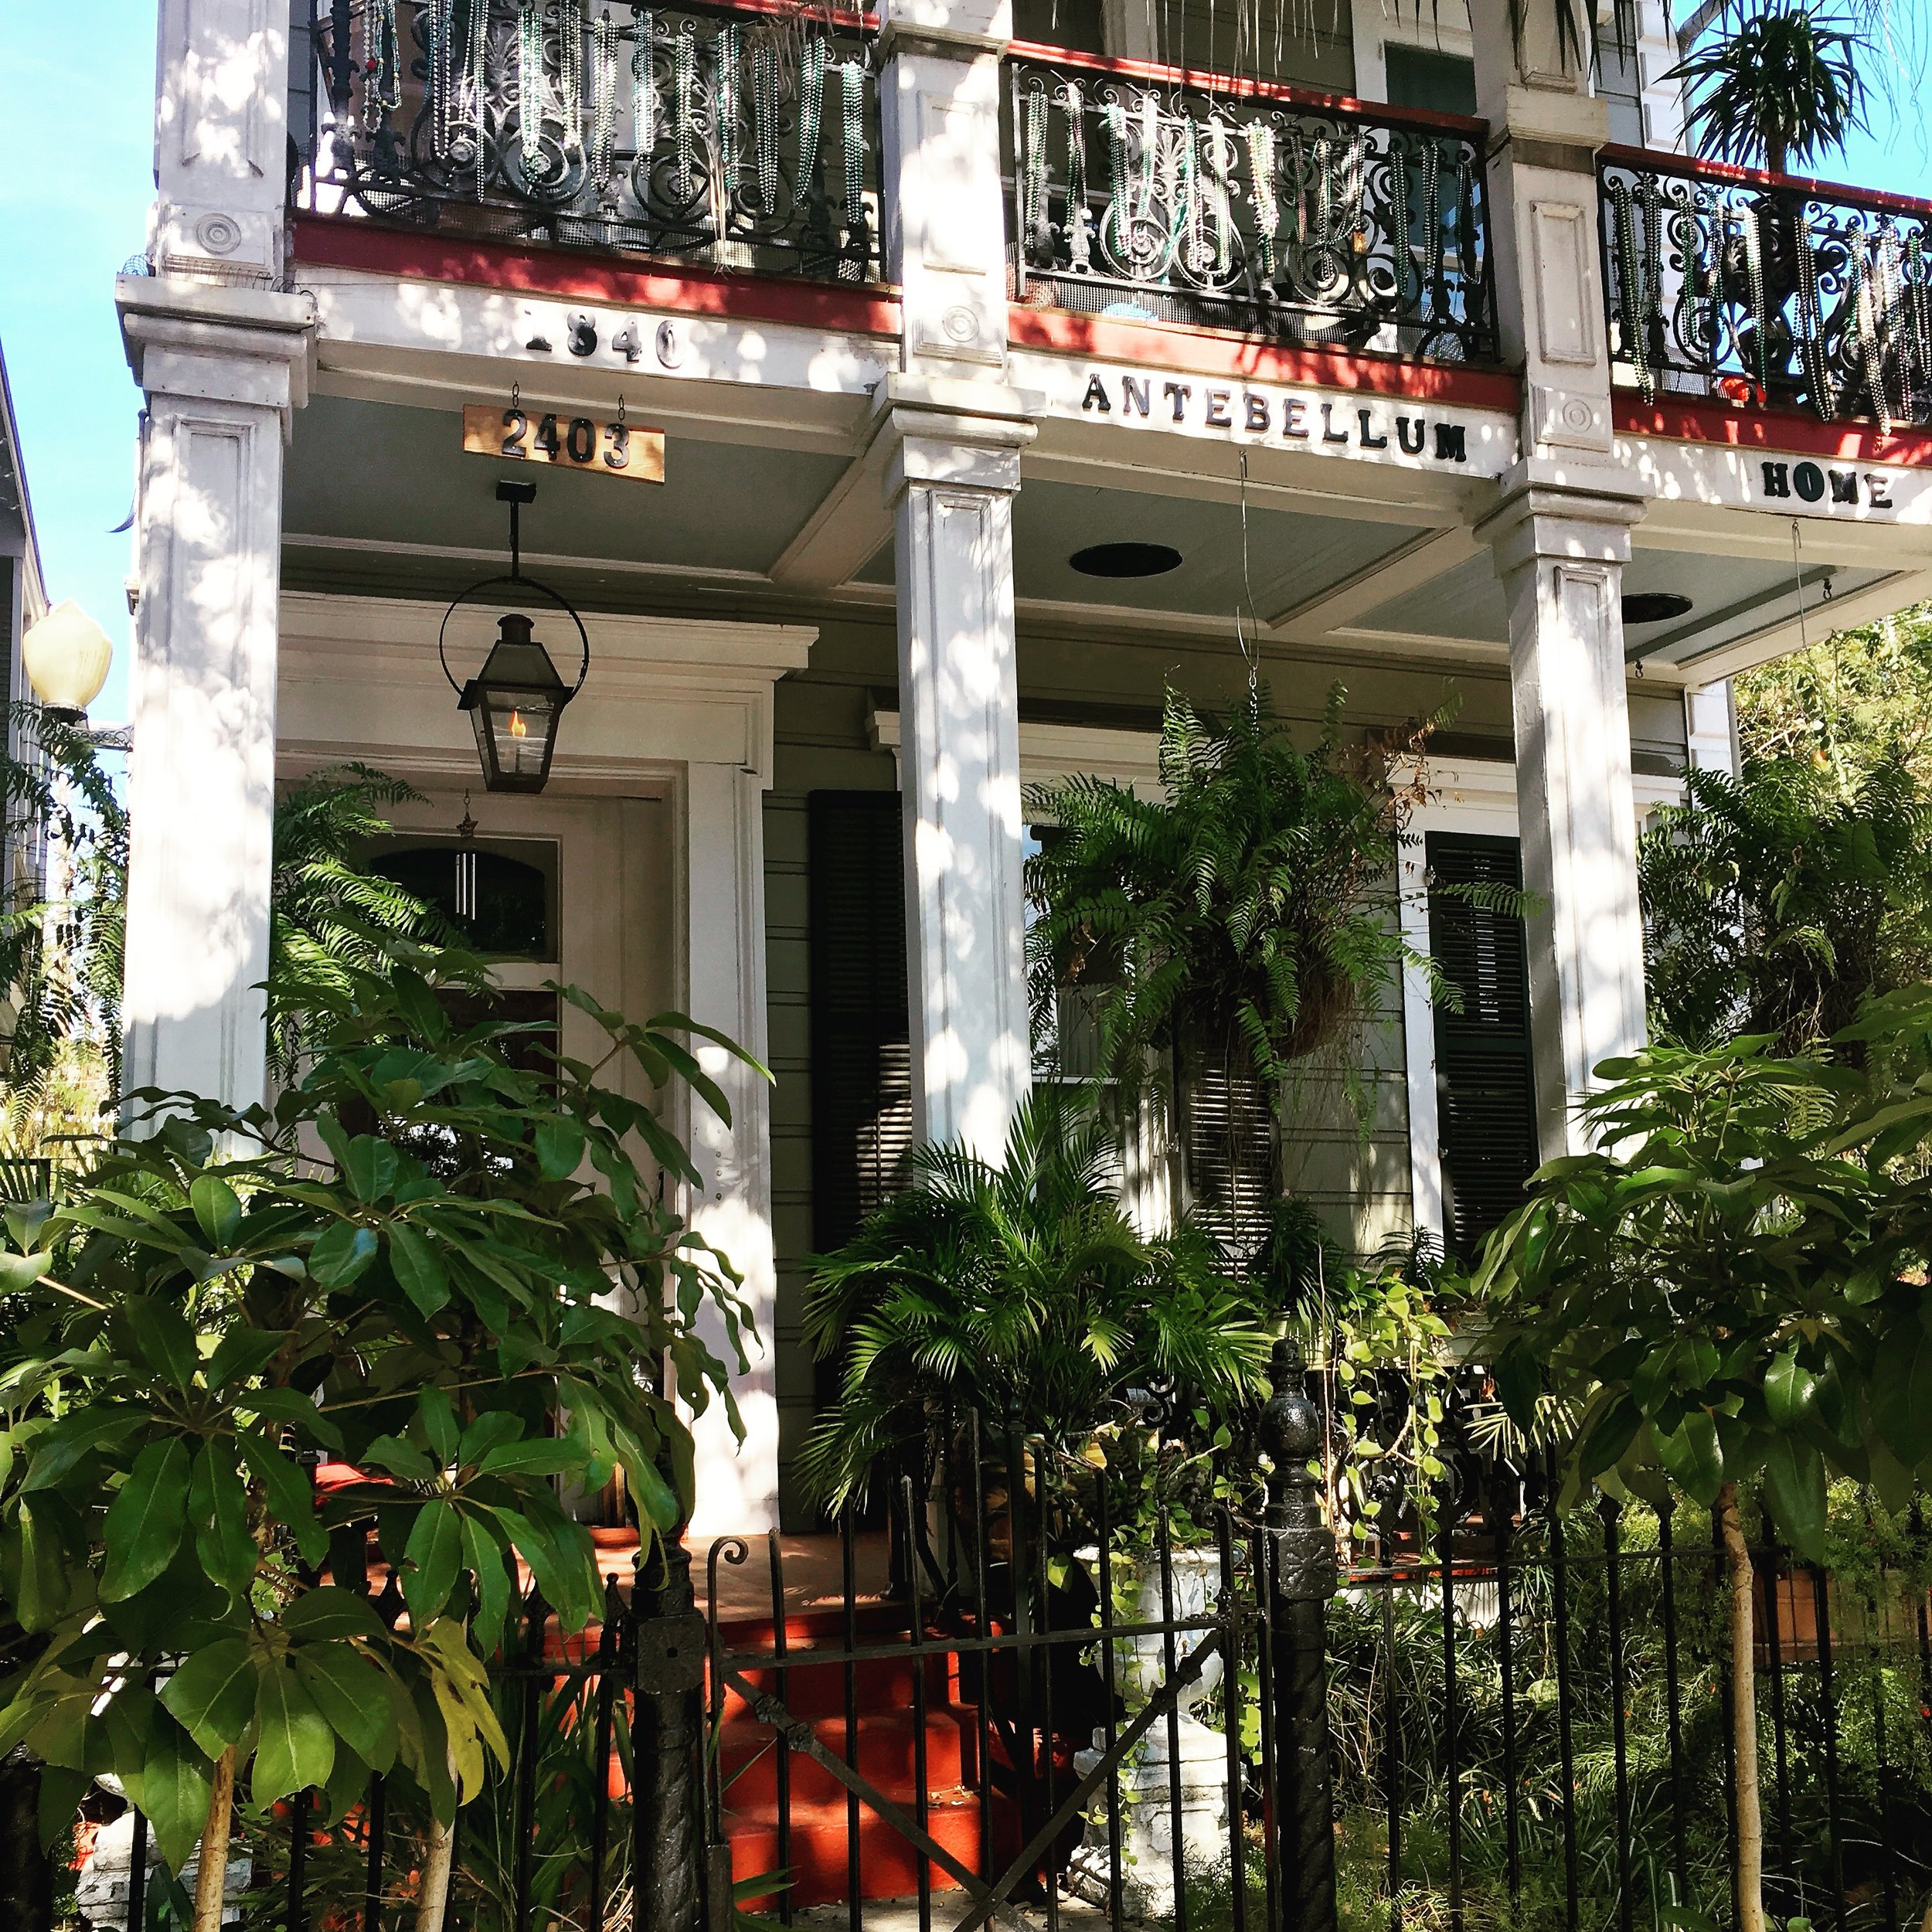 Antebellum home c1840 of the Garden District, New Orleans (image by Jacqui Gibson).